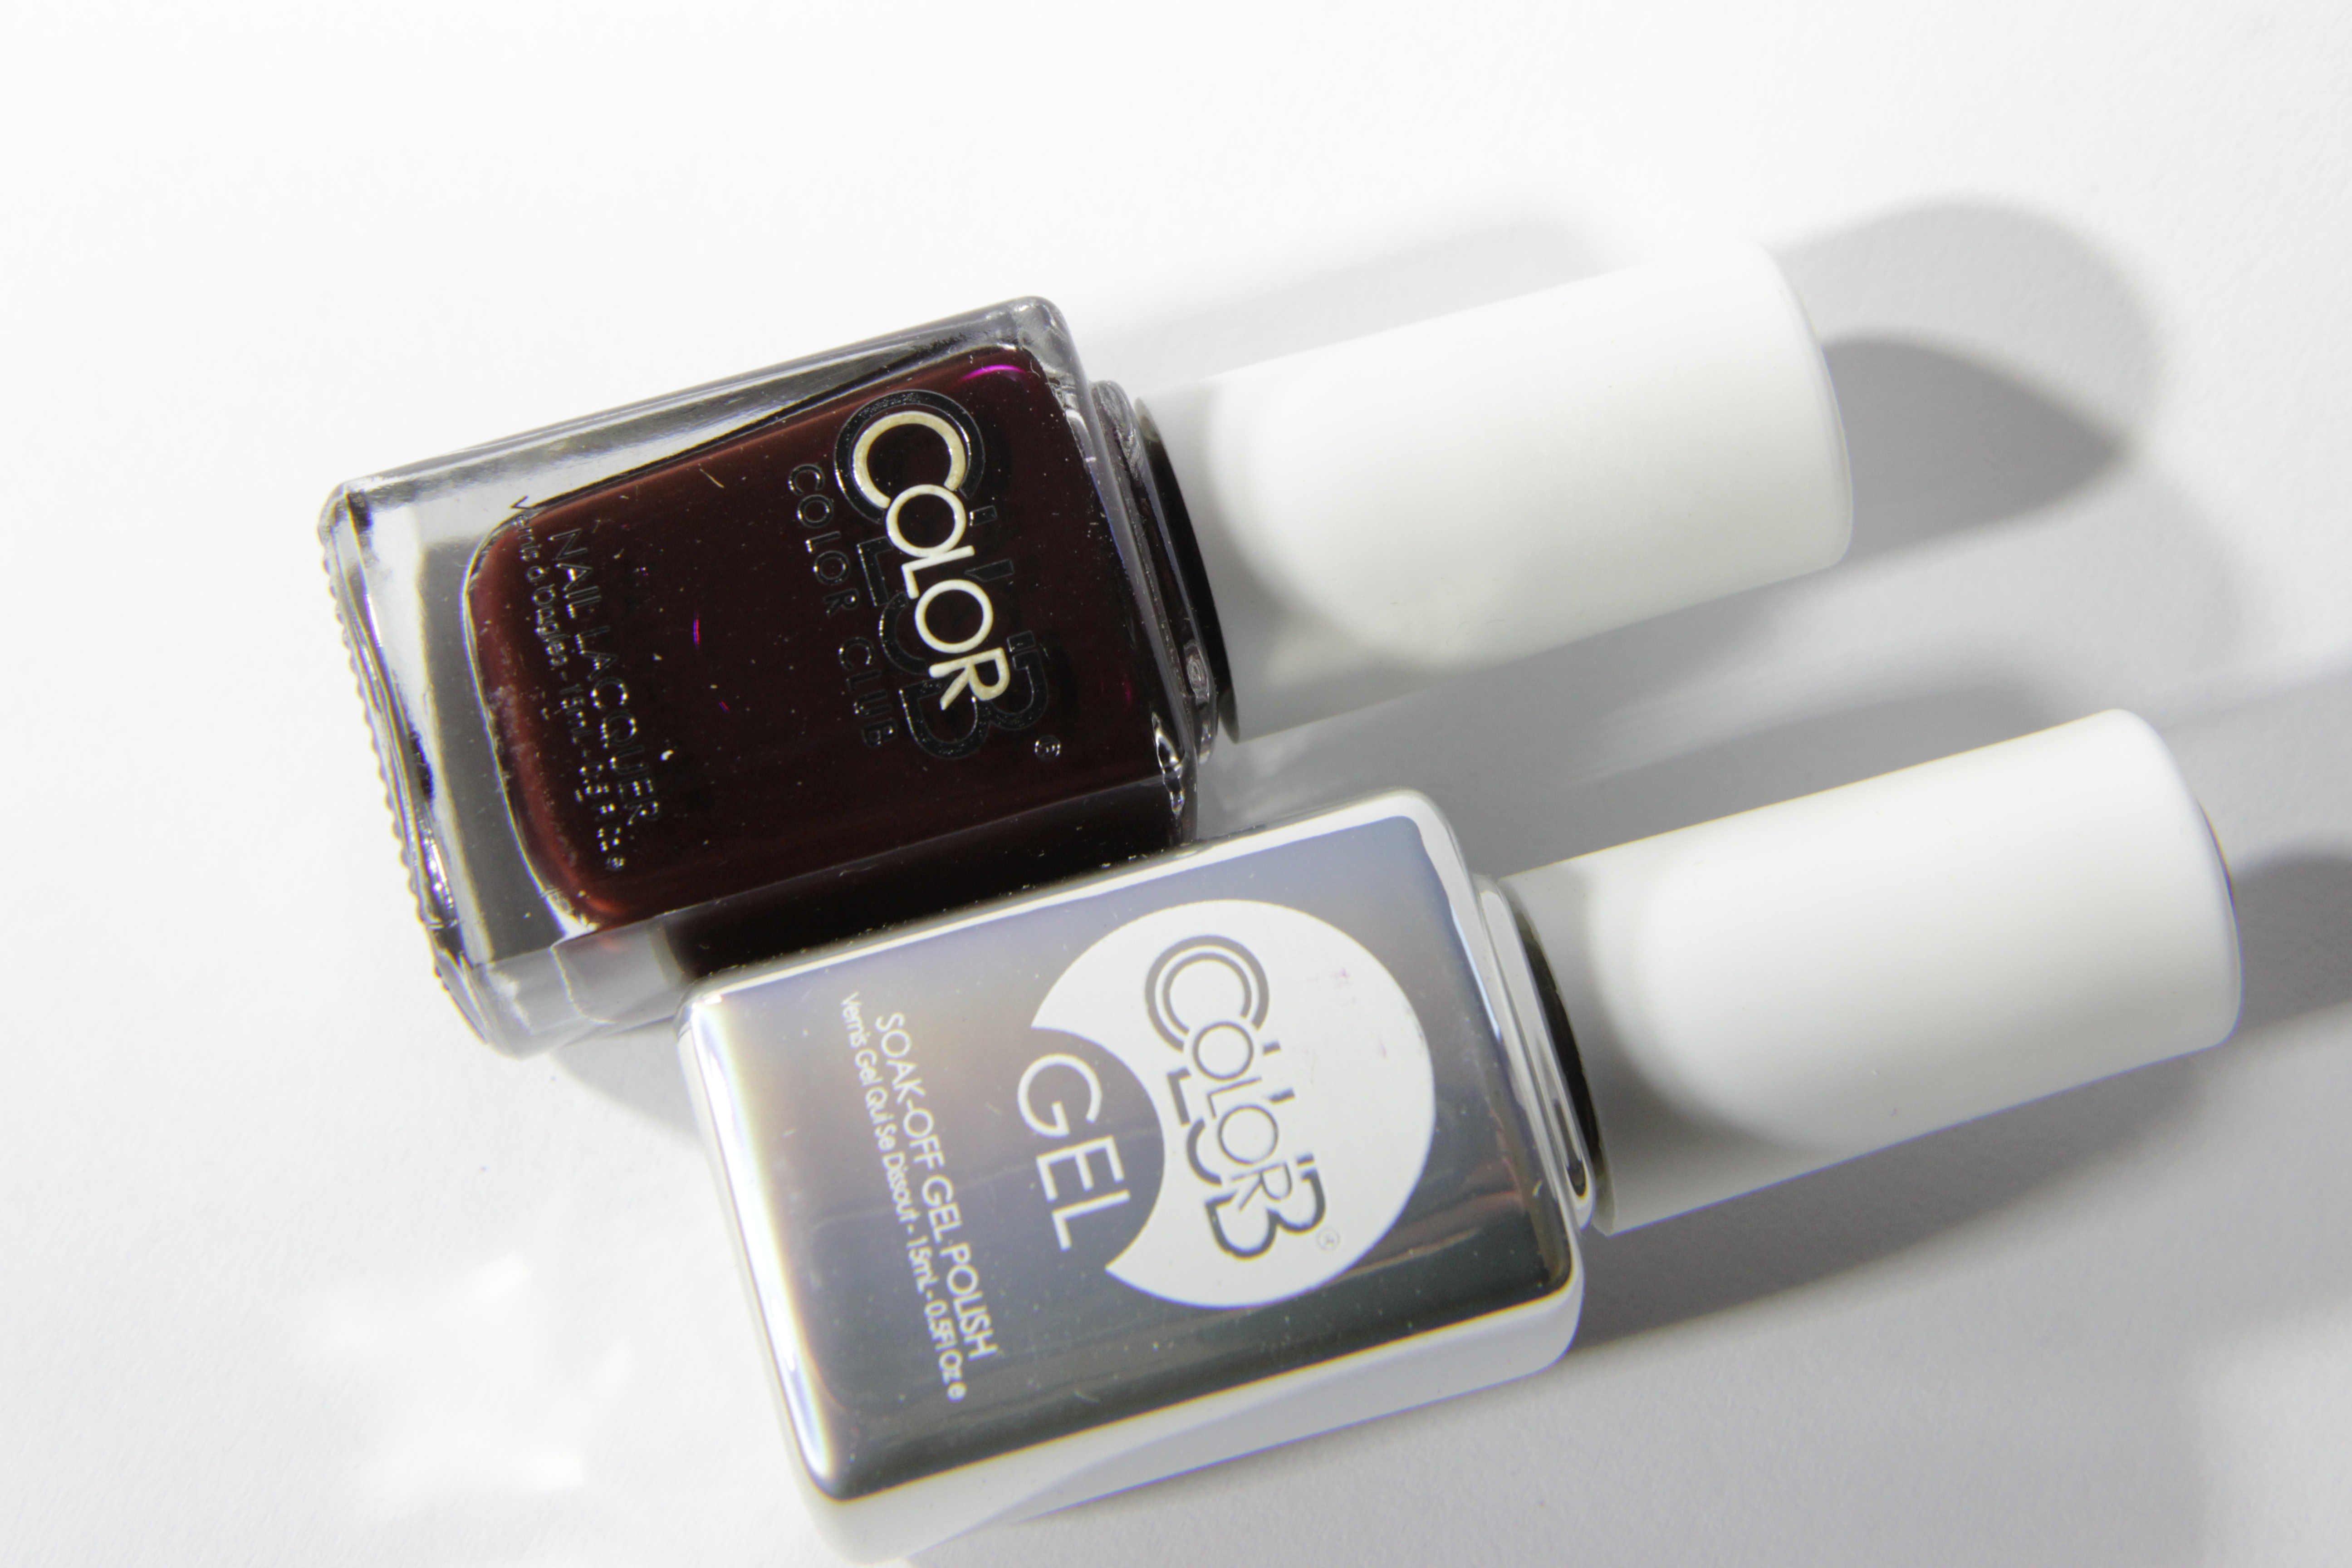 #0806 KILLER CURVES Color Club Duo Nagellack Nail Lacquer and Soak-Off Gel Polish Dunkelrot